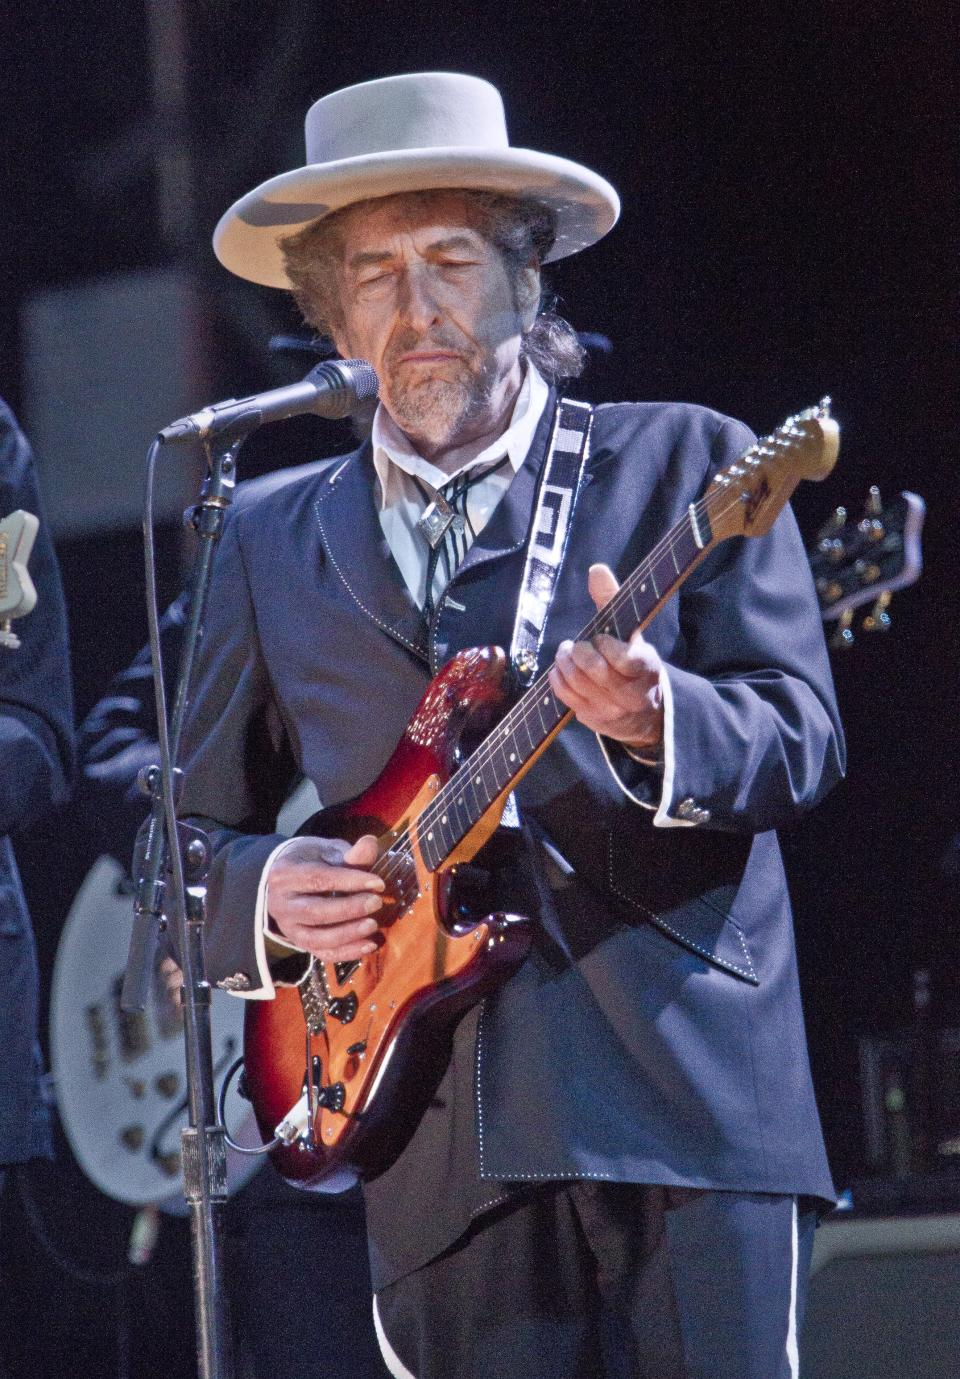 U.S musician Bob Dylan performs at the London Feis Festival, in Finsbury Park, Saturday, June 18, 2011, just weeks after his 70th birthday. (AP Photo/Joel Ryan)